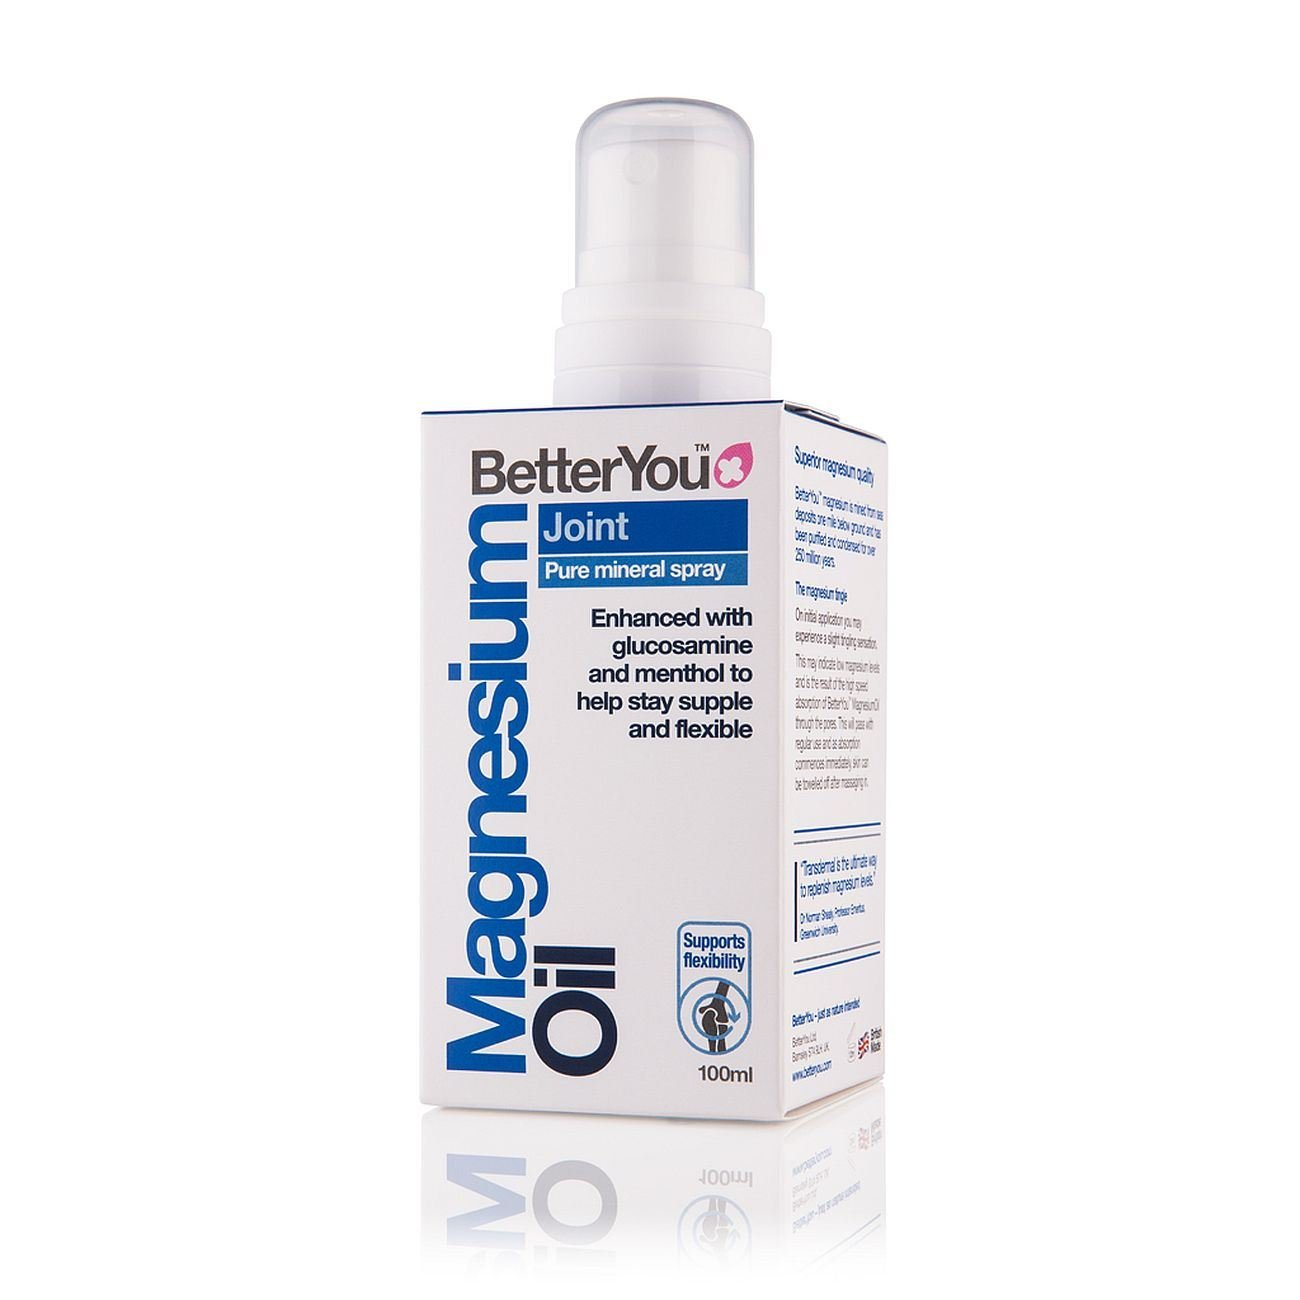 BetterYou - Magnesium Oil - Joint - 100ml